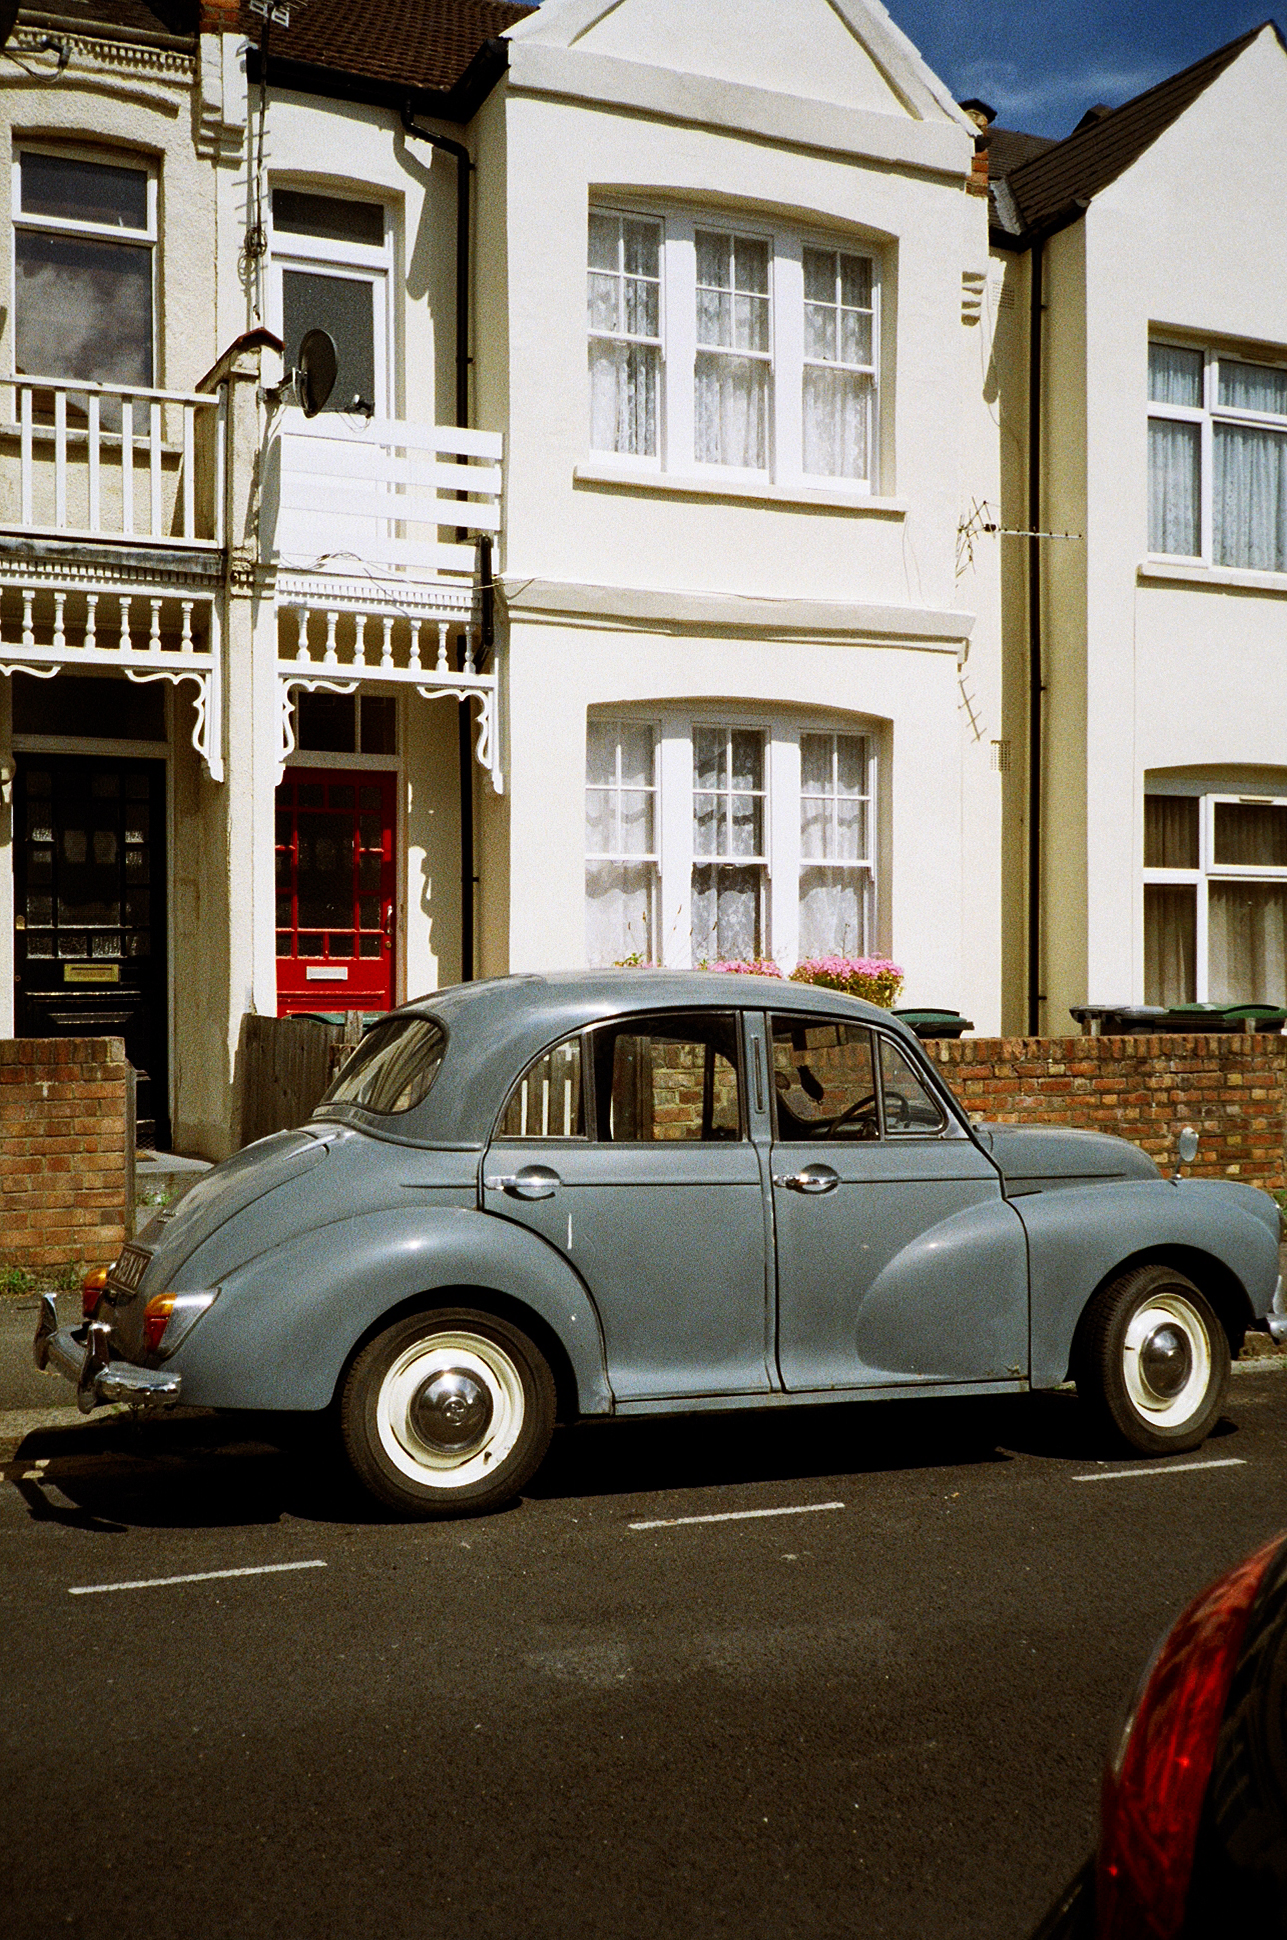 London street beetle car 35mm film diary by Ailera Stone